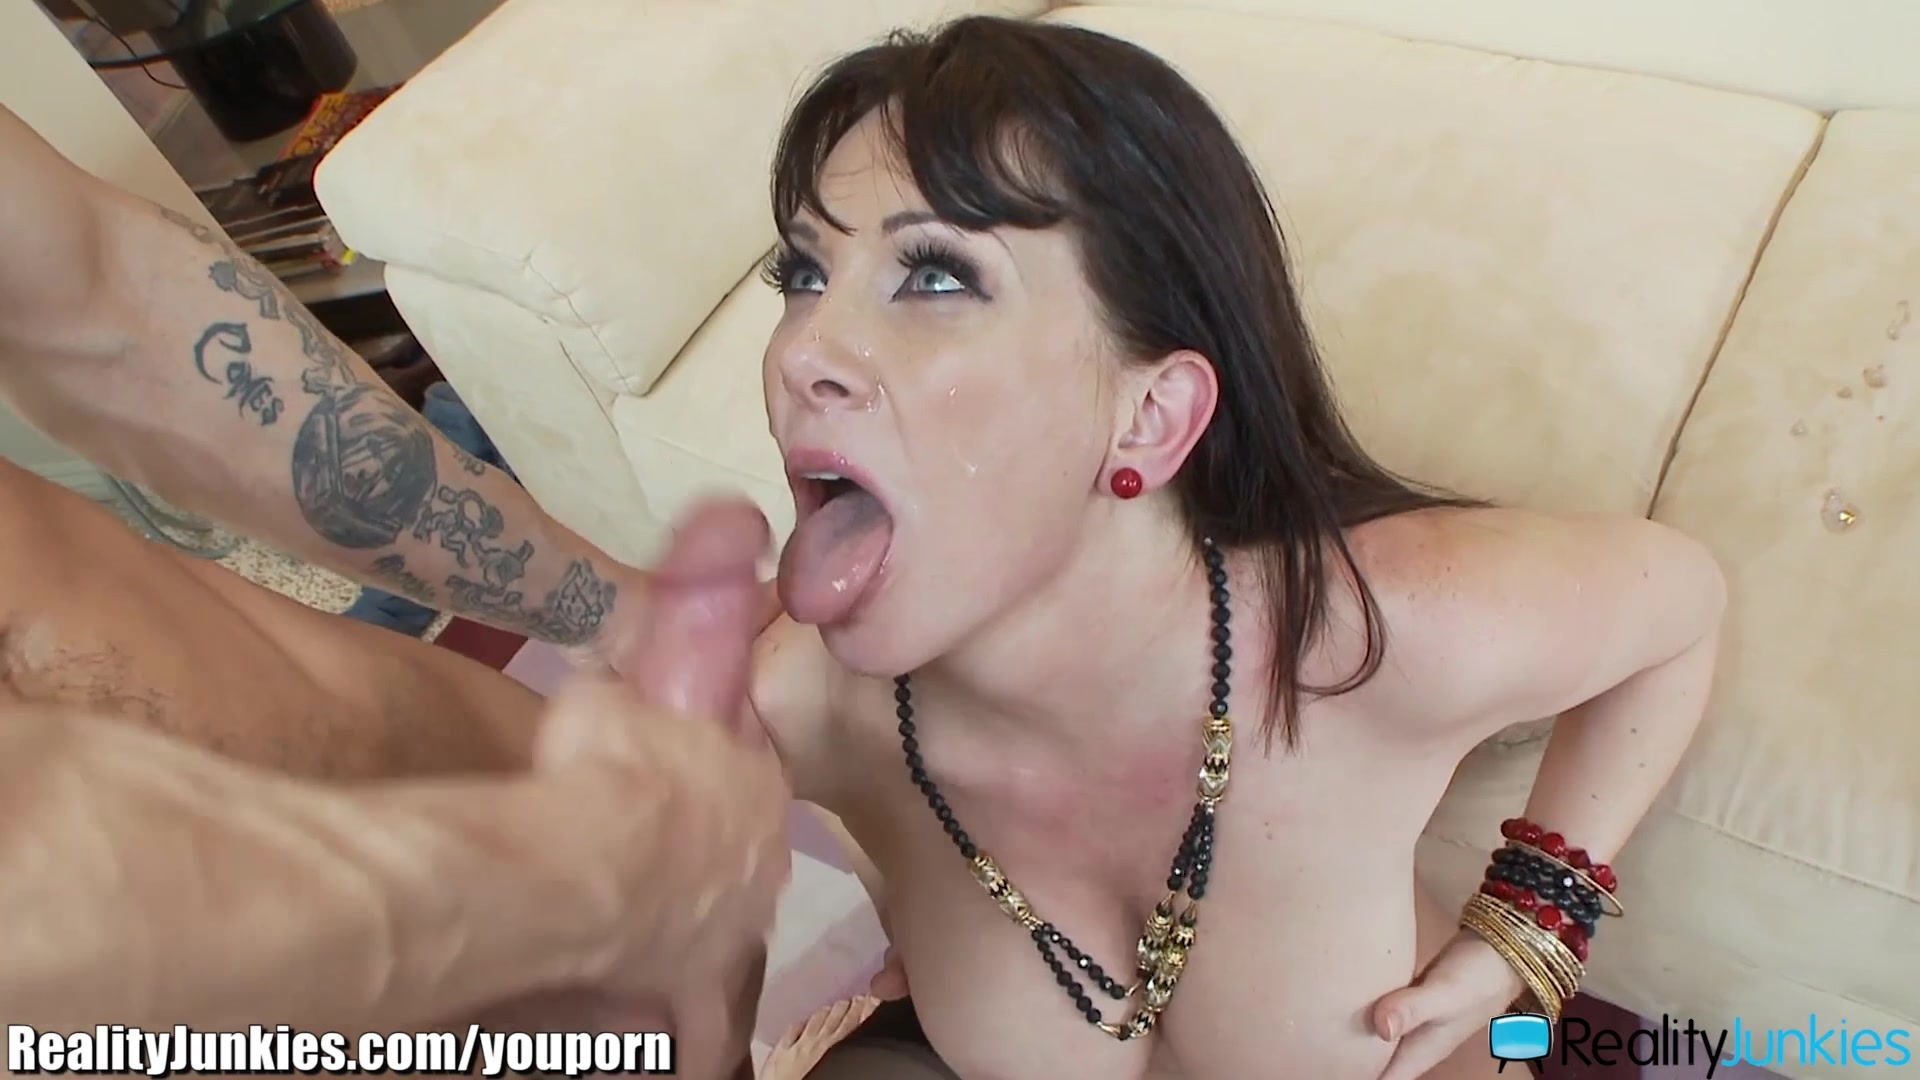 Bitch free mature facial cumshots vid.. thanks